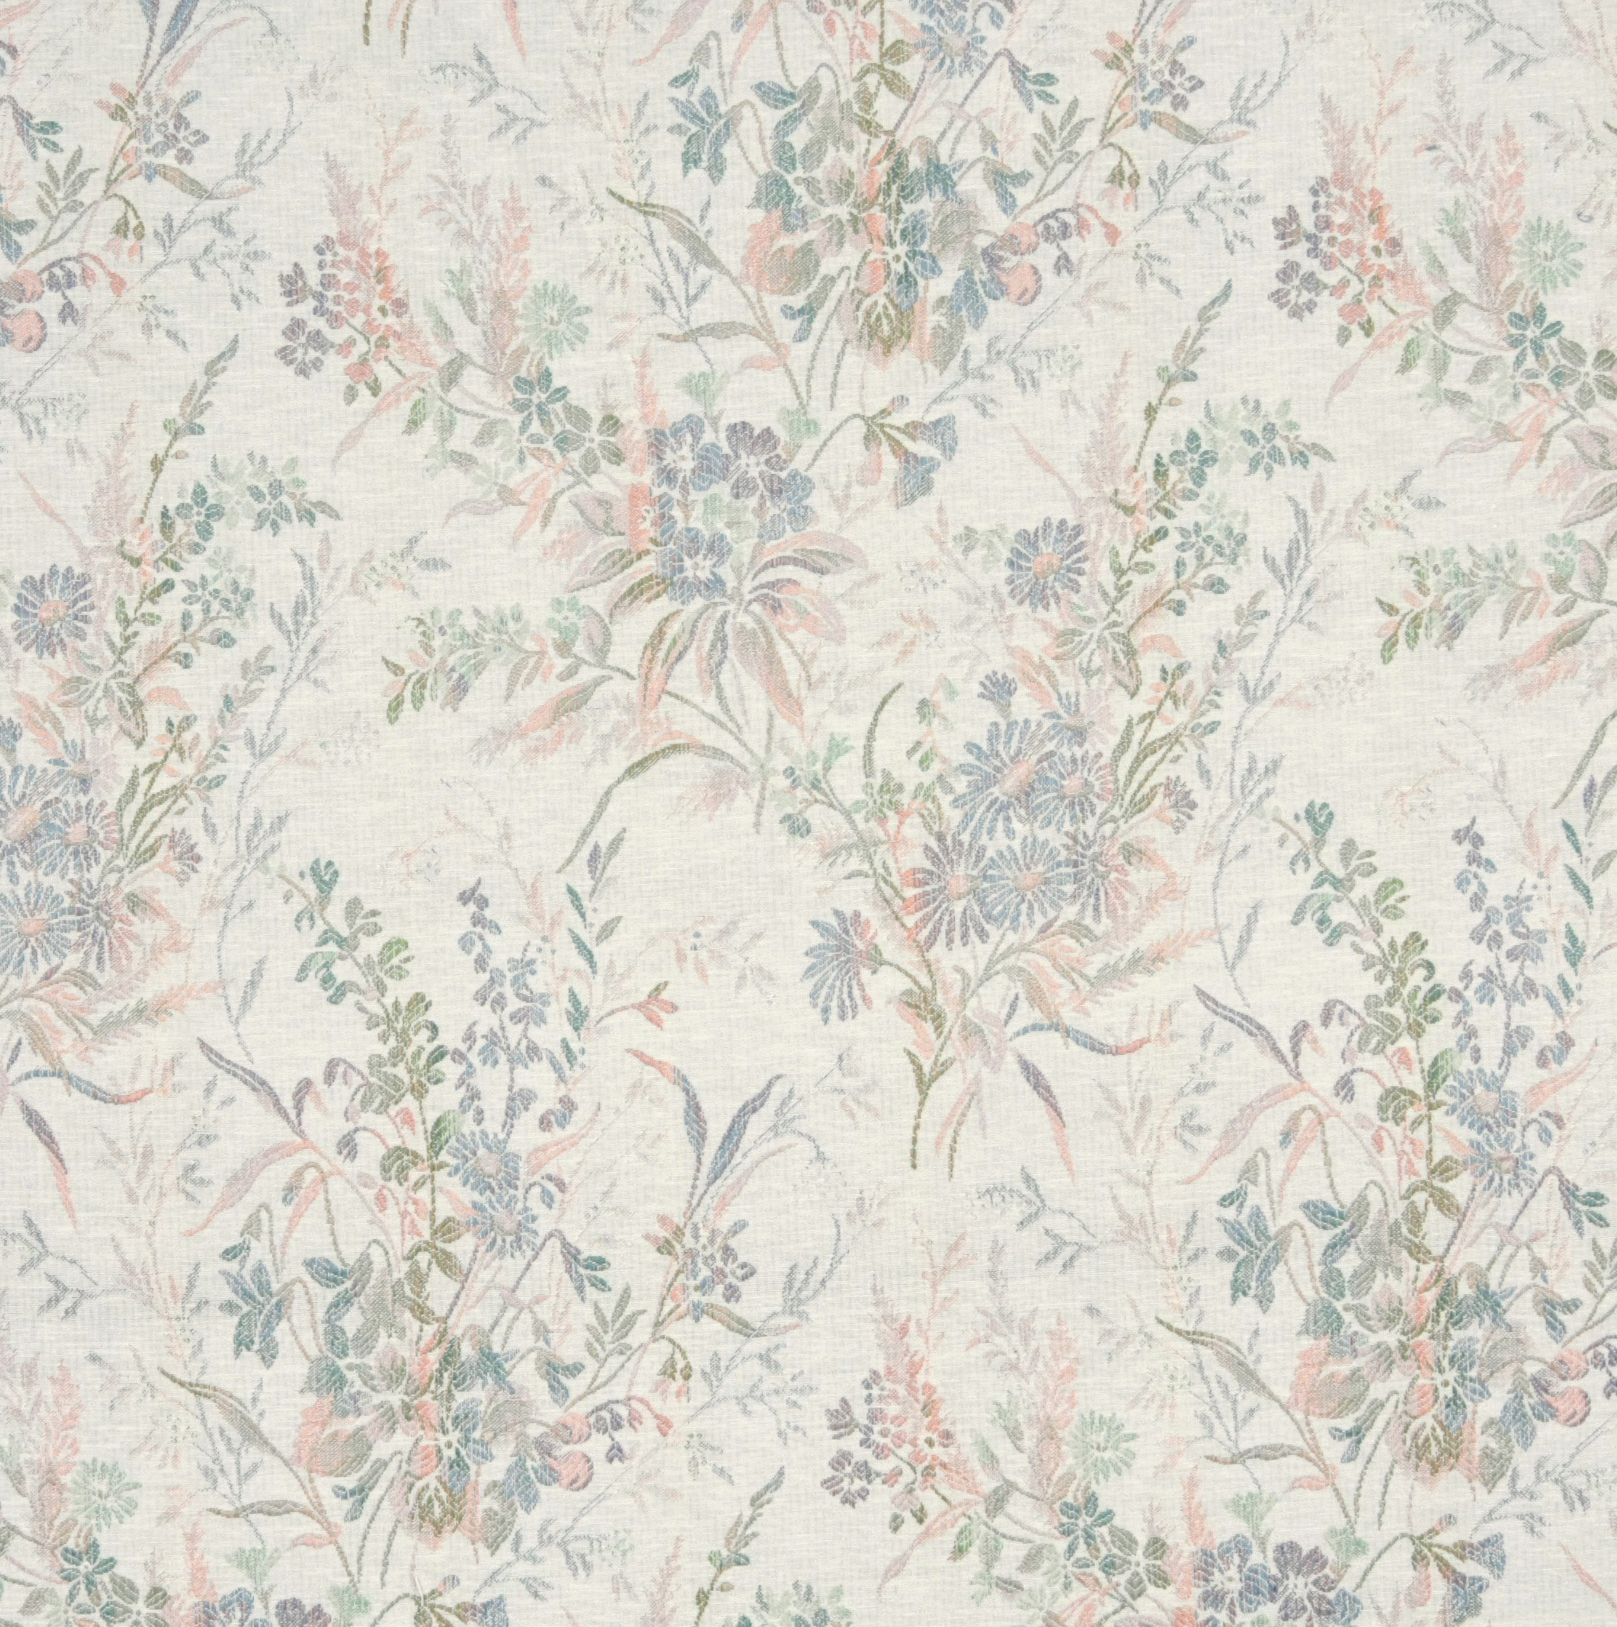 Meadow Coral And Light Blue Floral Damask Upholstery Fabric